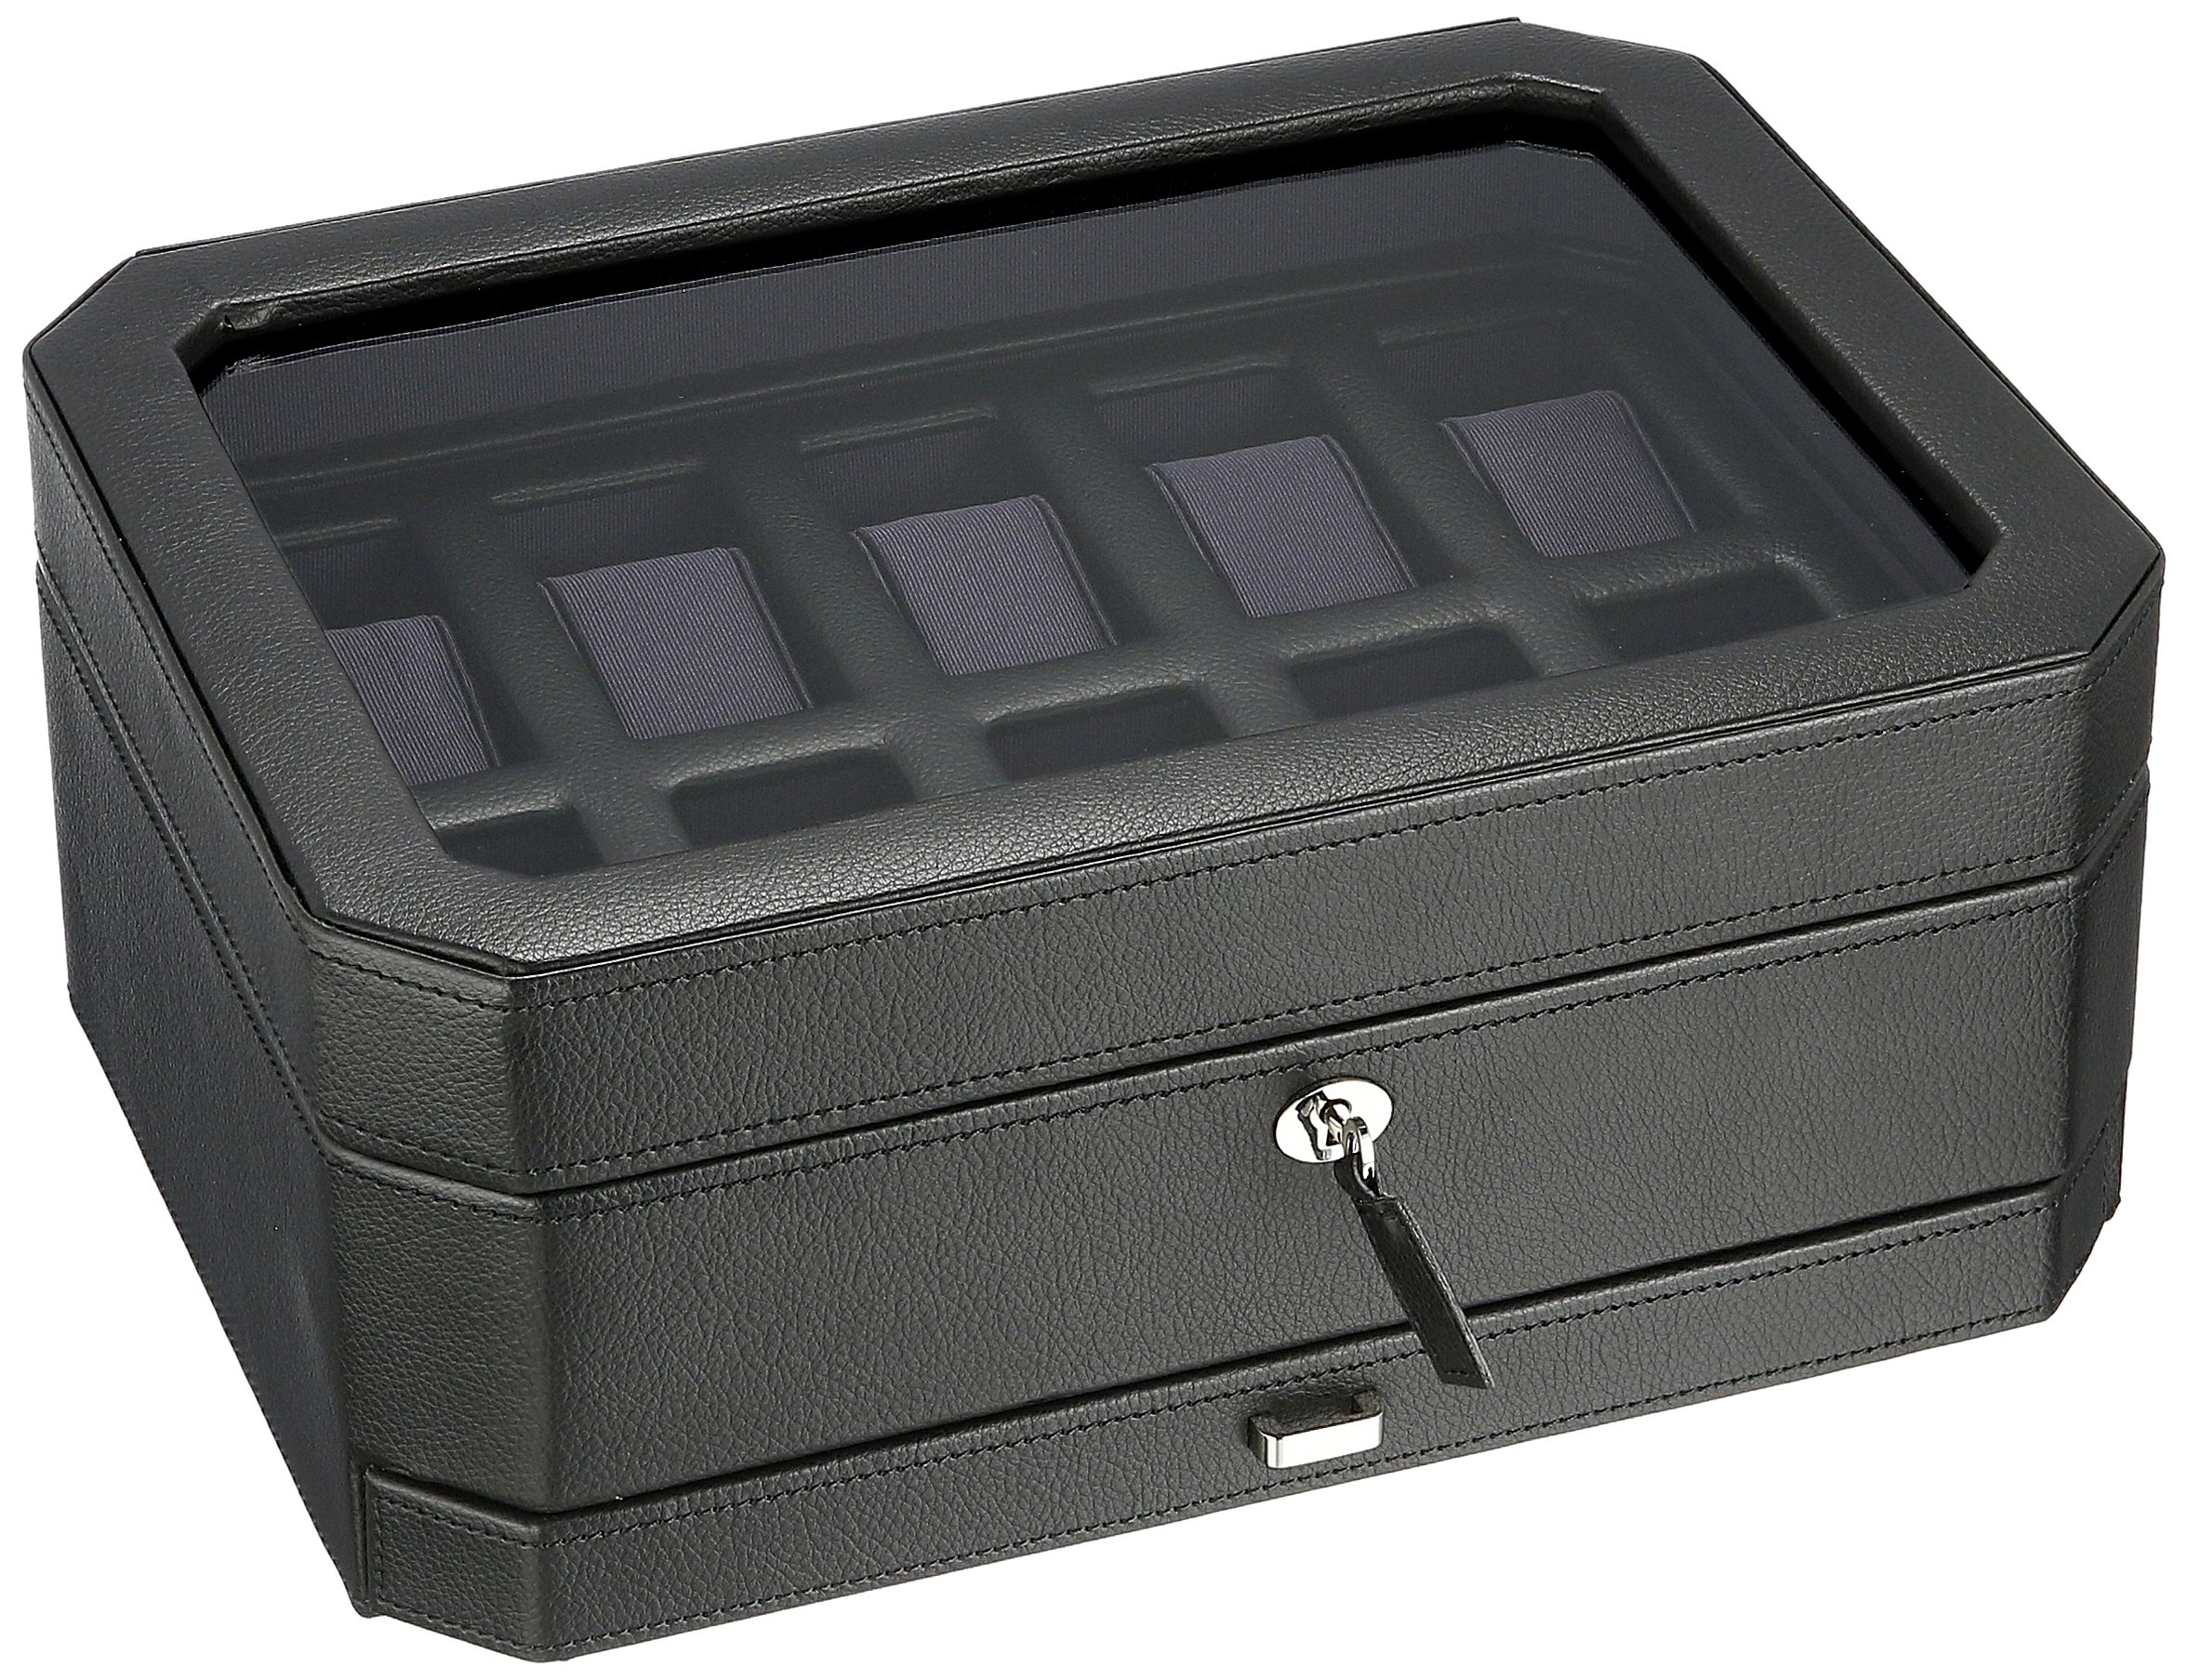 WOLF 458603 Windsor 10 Piece Watch Box with Cover and Drawer, Black/Purple by WOLF